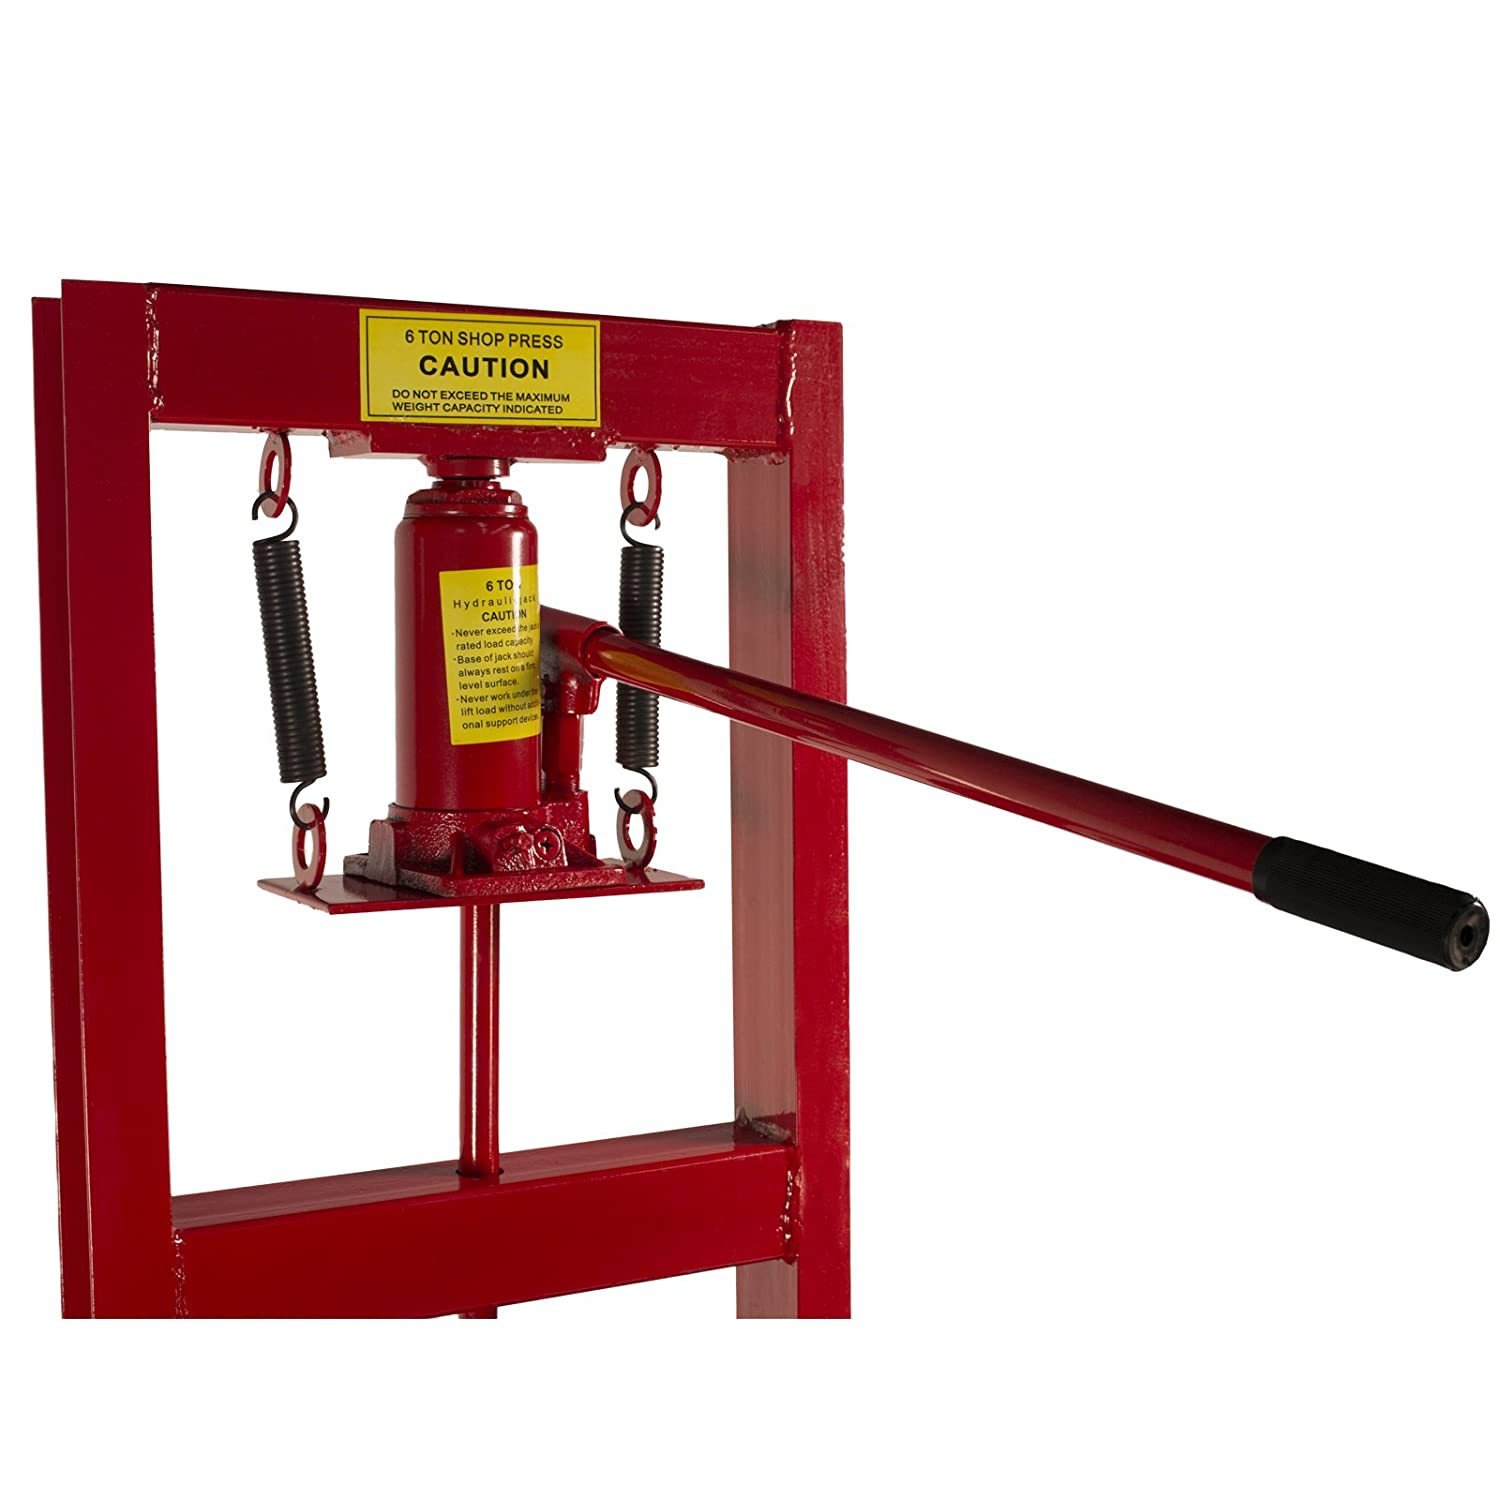 Dragway Tools 6-Ton Hydraulic Shop Floor Press with Press Plates and H Frame is Ideal for Gears and Bearings